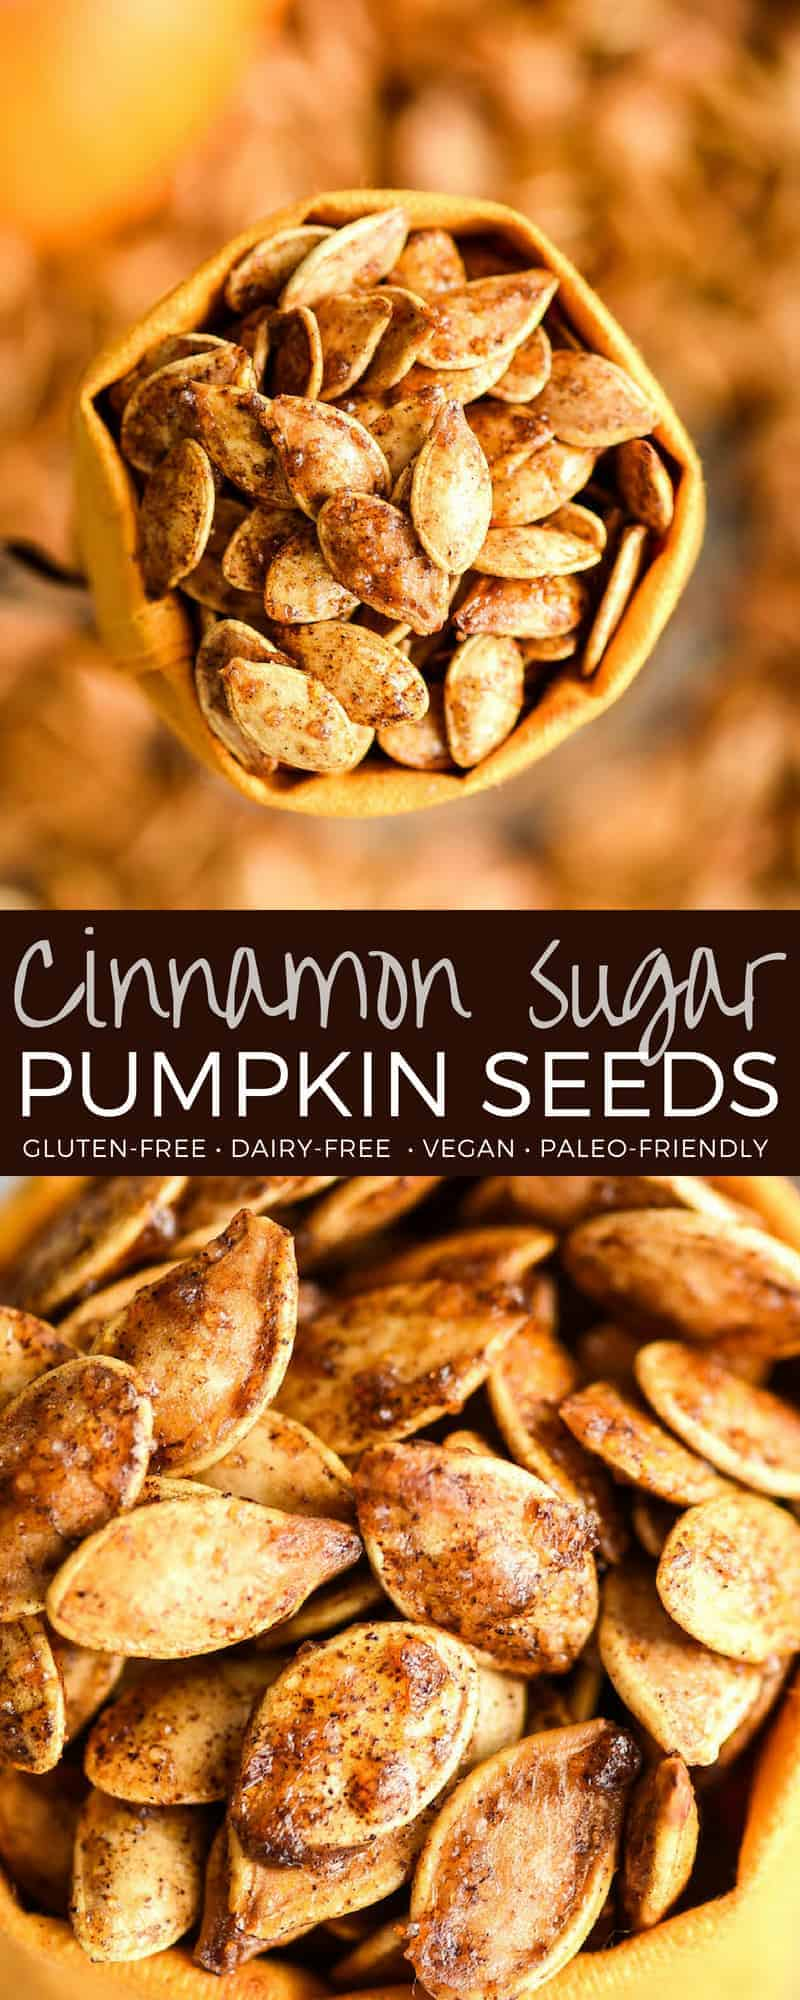 Homemade Cinnamon Sugar Pumpkin Seeds Recipe! Don't throw away the seeds when you carve pumpkins this year! Save them and make this recipe for the perfect sweet and salty fall snack! Vegan, gluten-free and dairy-free! and paleo-friendly! #pumpkin #pumpkinseeds #homemade #healthy #recipe #glutenfree #dairyfree #vegan #cinnamonsugar #paleo